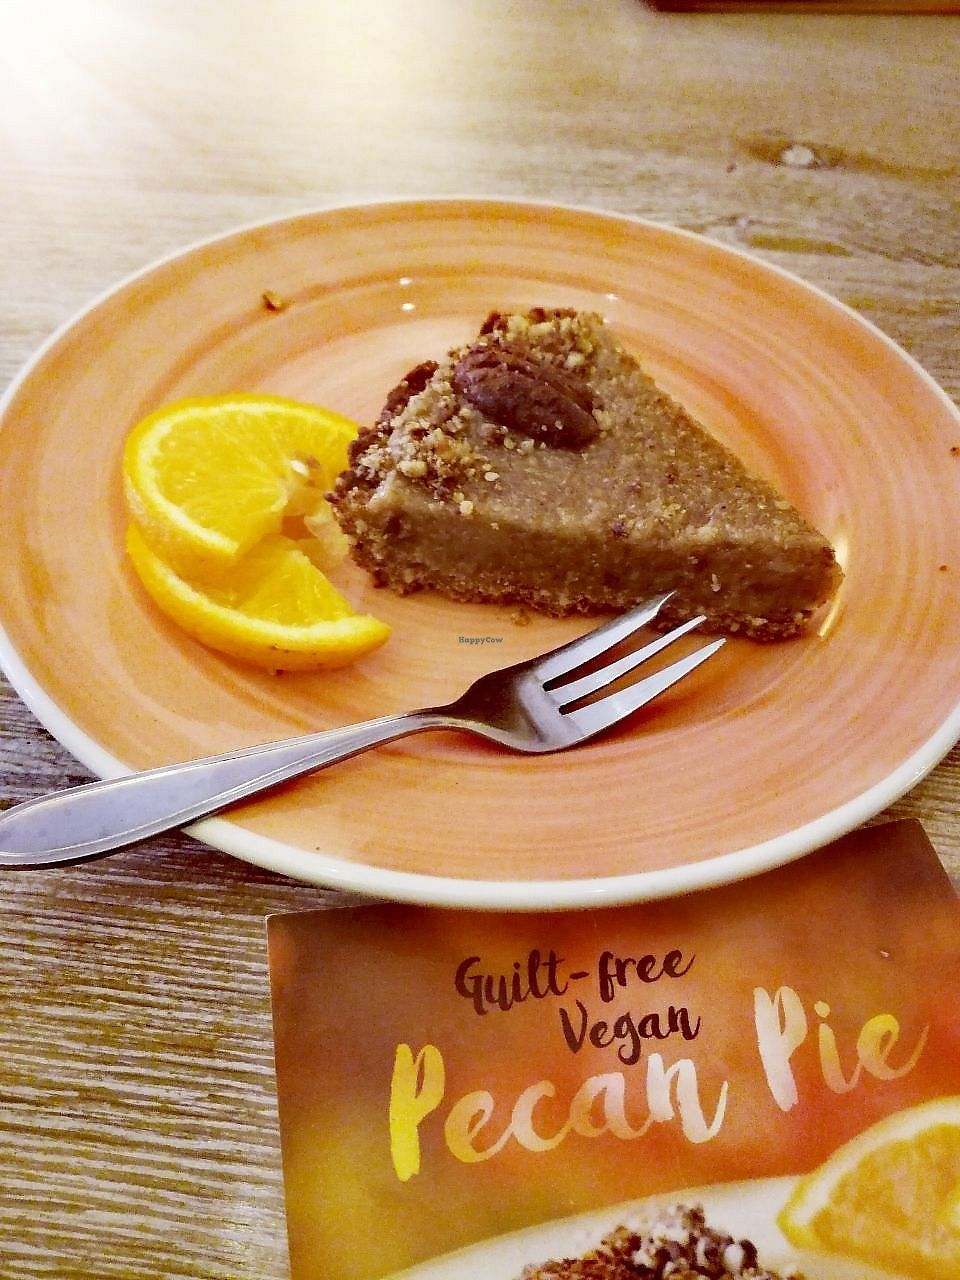 """Photo of Bagels & Beans  by <a href=""""/members/profile/happyowl"""">happyowl</a> <br/>Vegan pecan pie <br/> August 7, 2017  - <a href='/contact/abuse/image/64868/290195'>Report</a>"""